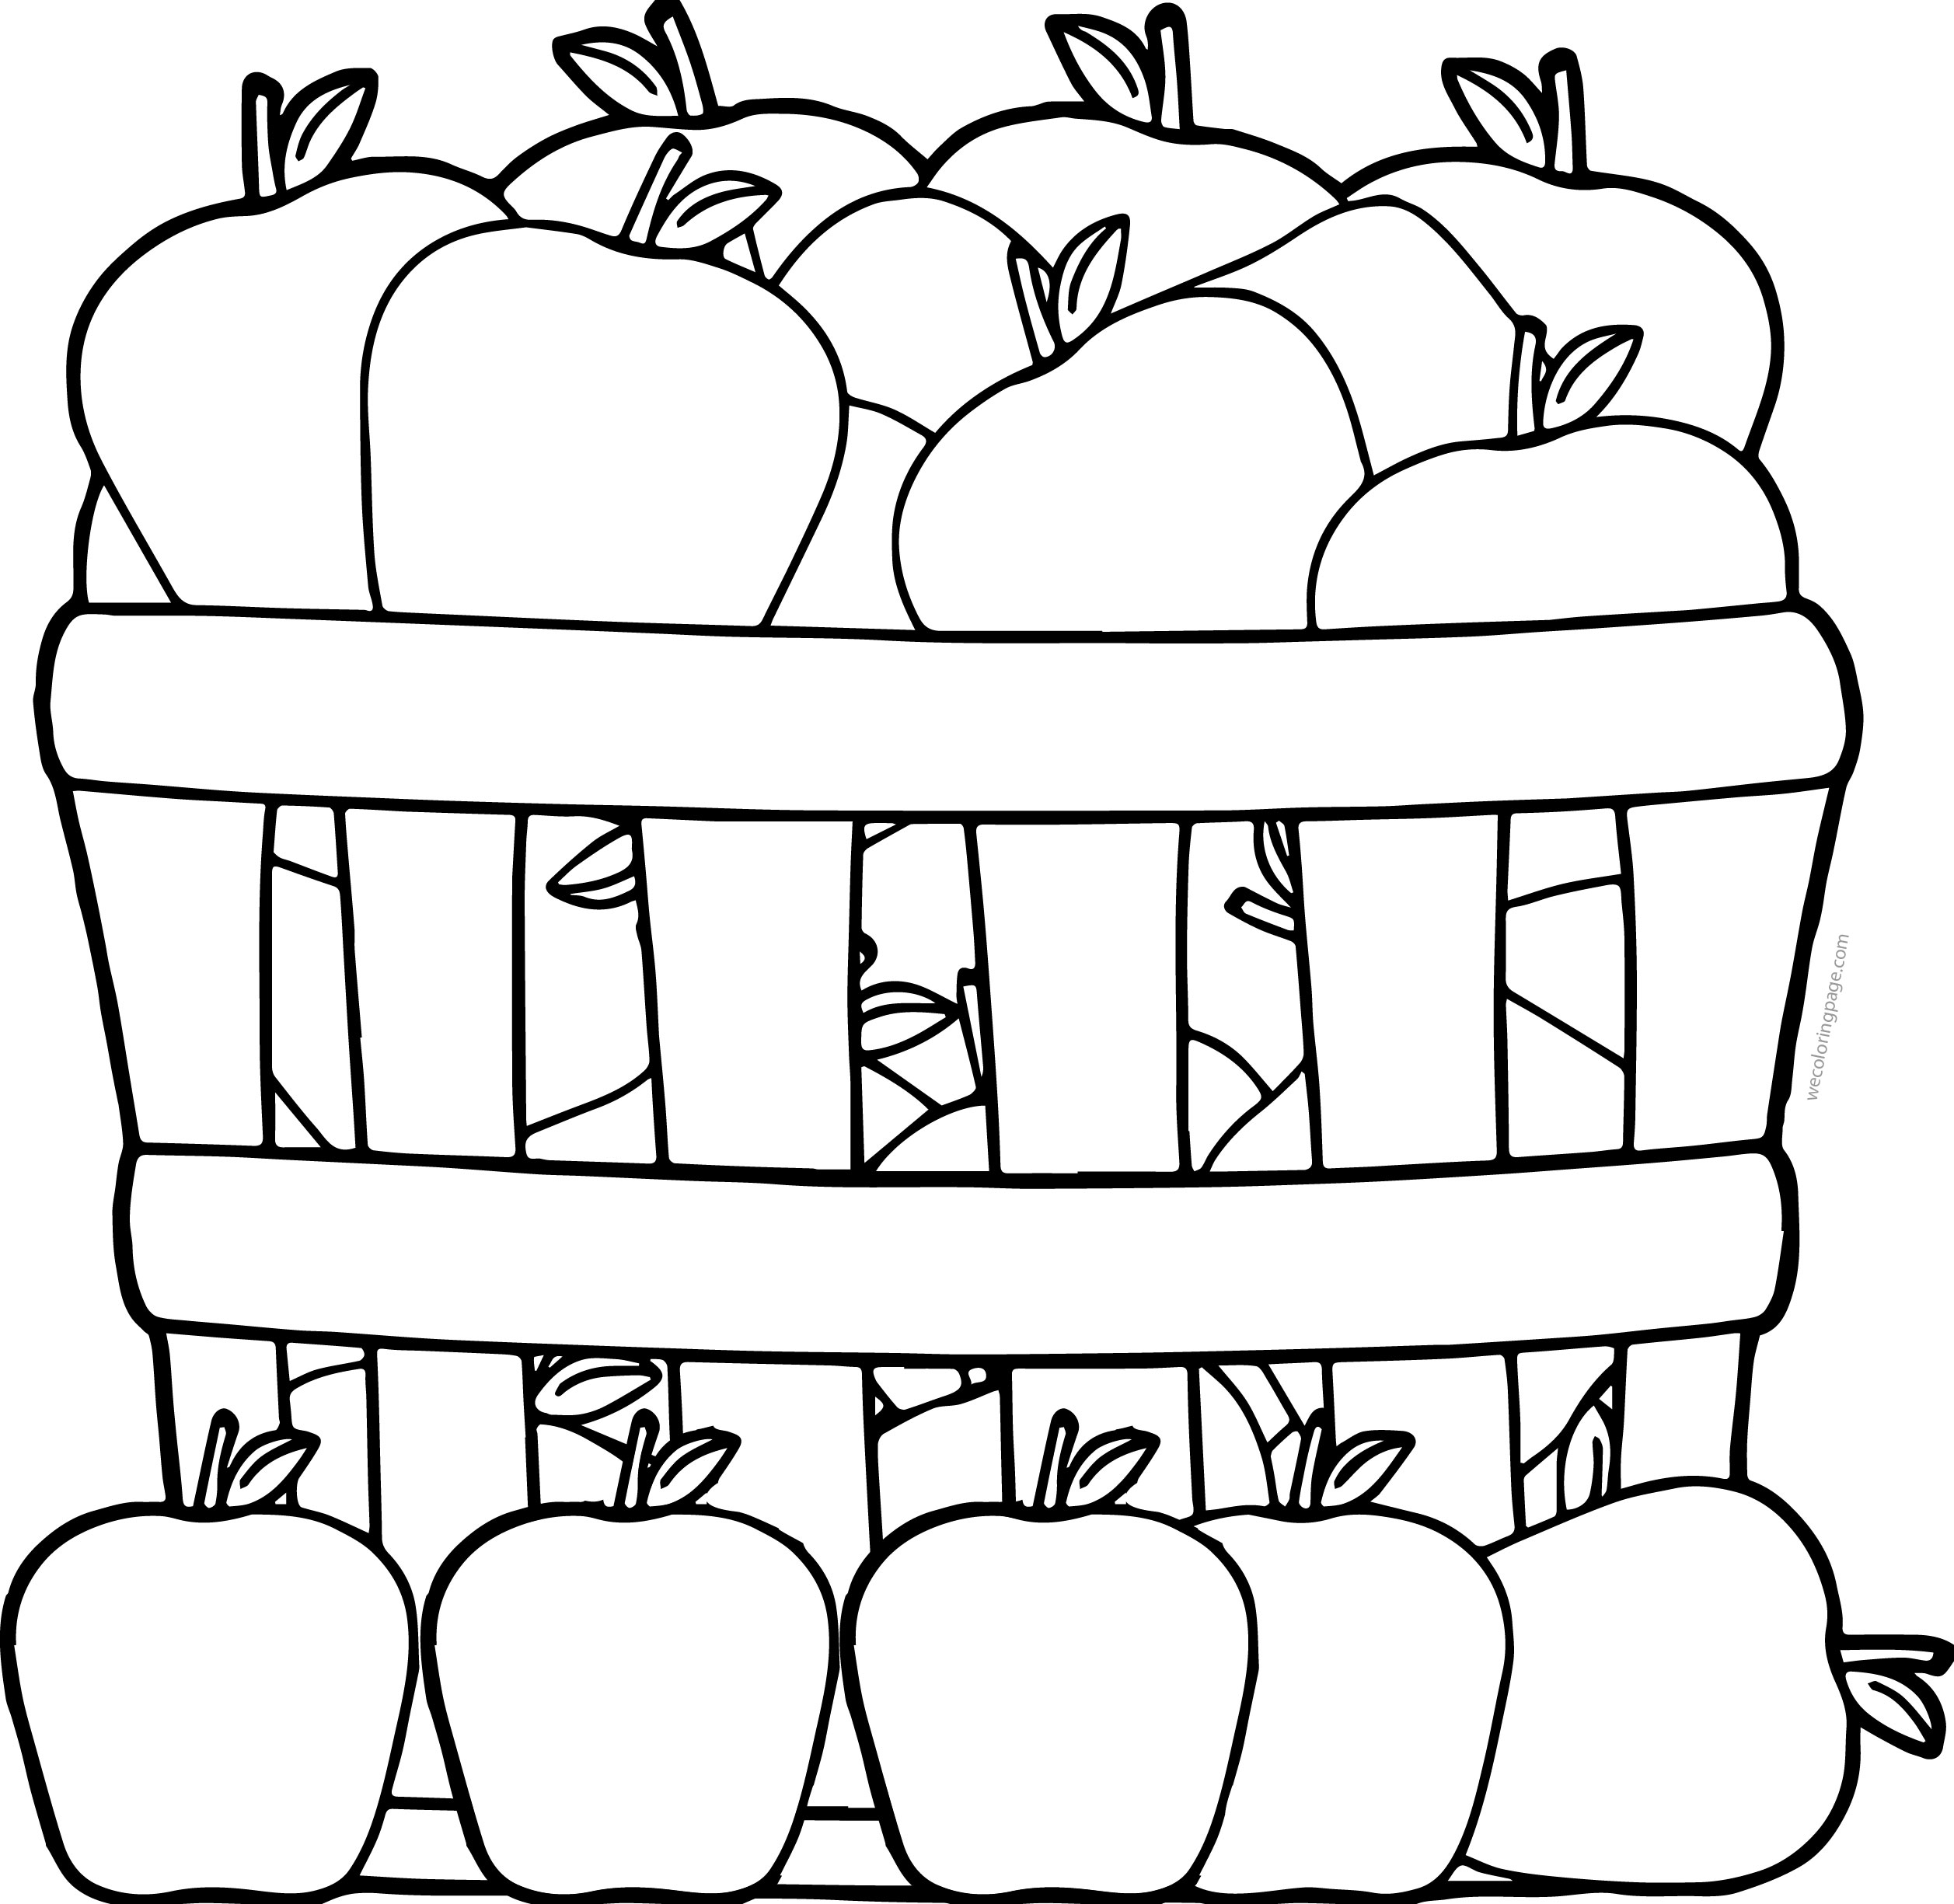 Apples In Basket Coloring Page